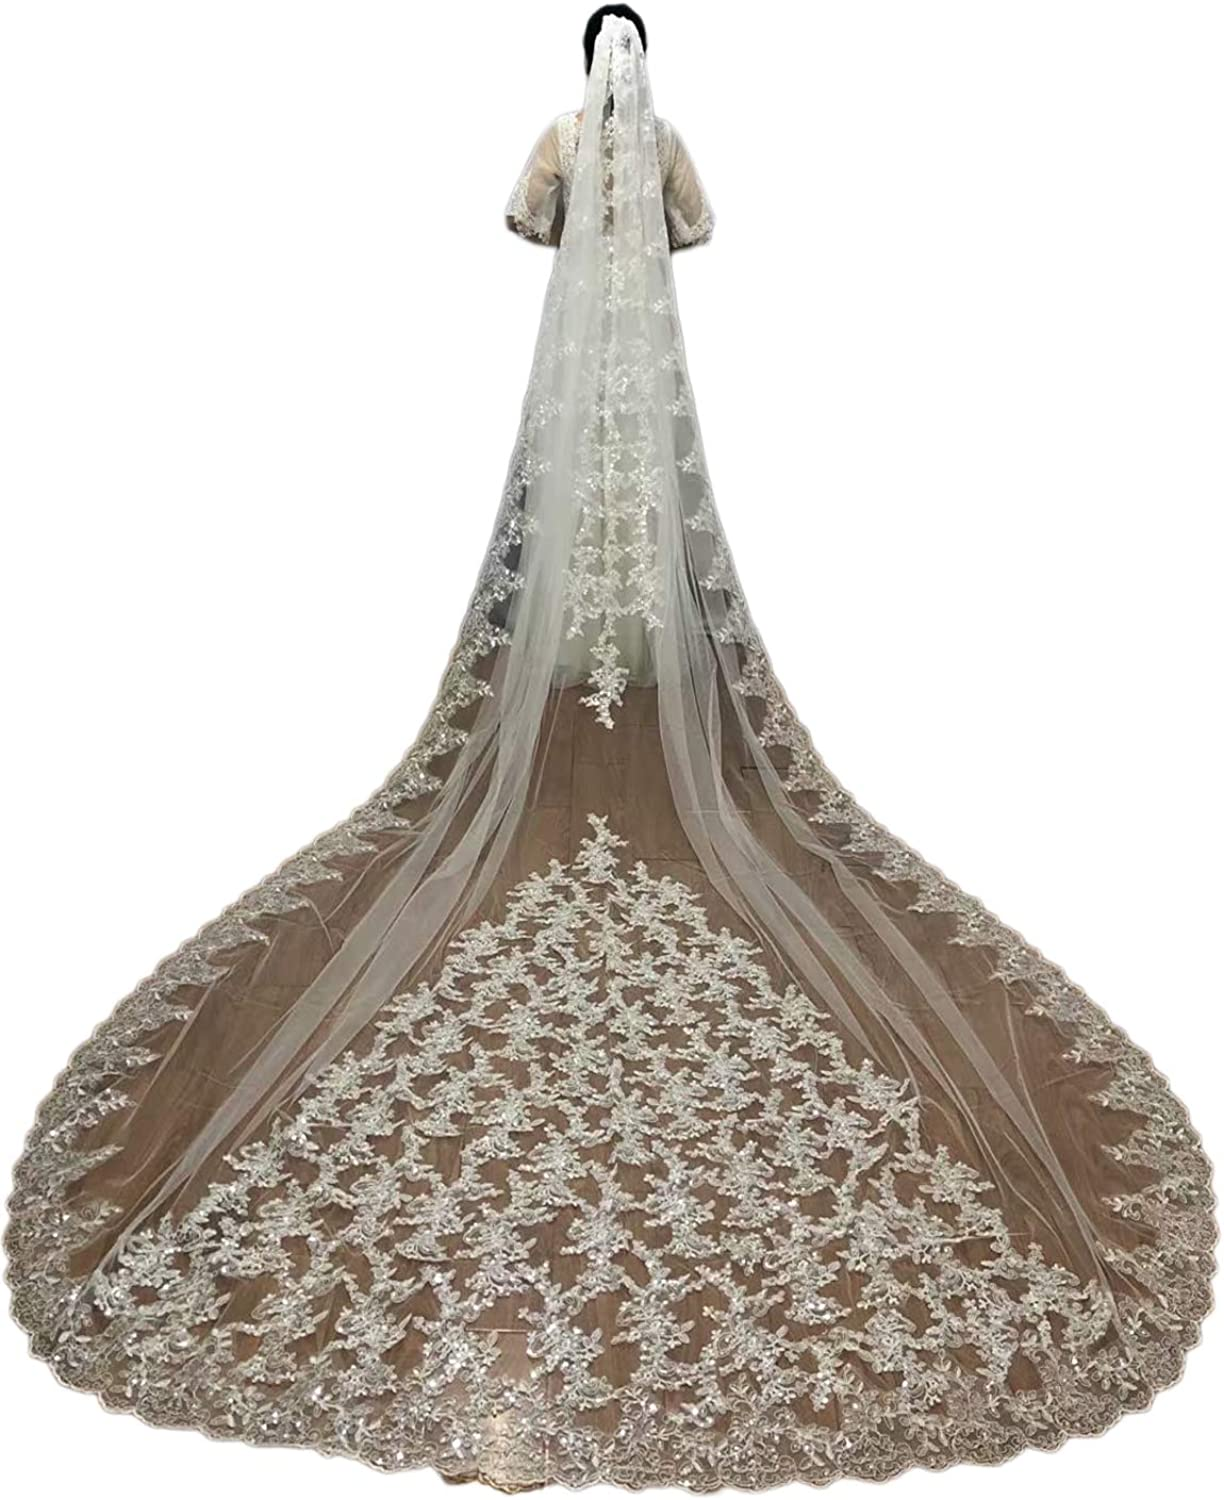 Faiokaver Wedding Veils 1 Tier Cathedral Floral Sequins Lace 5 Direct sale of manufacturer ☆ very popular Bri